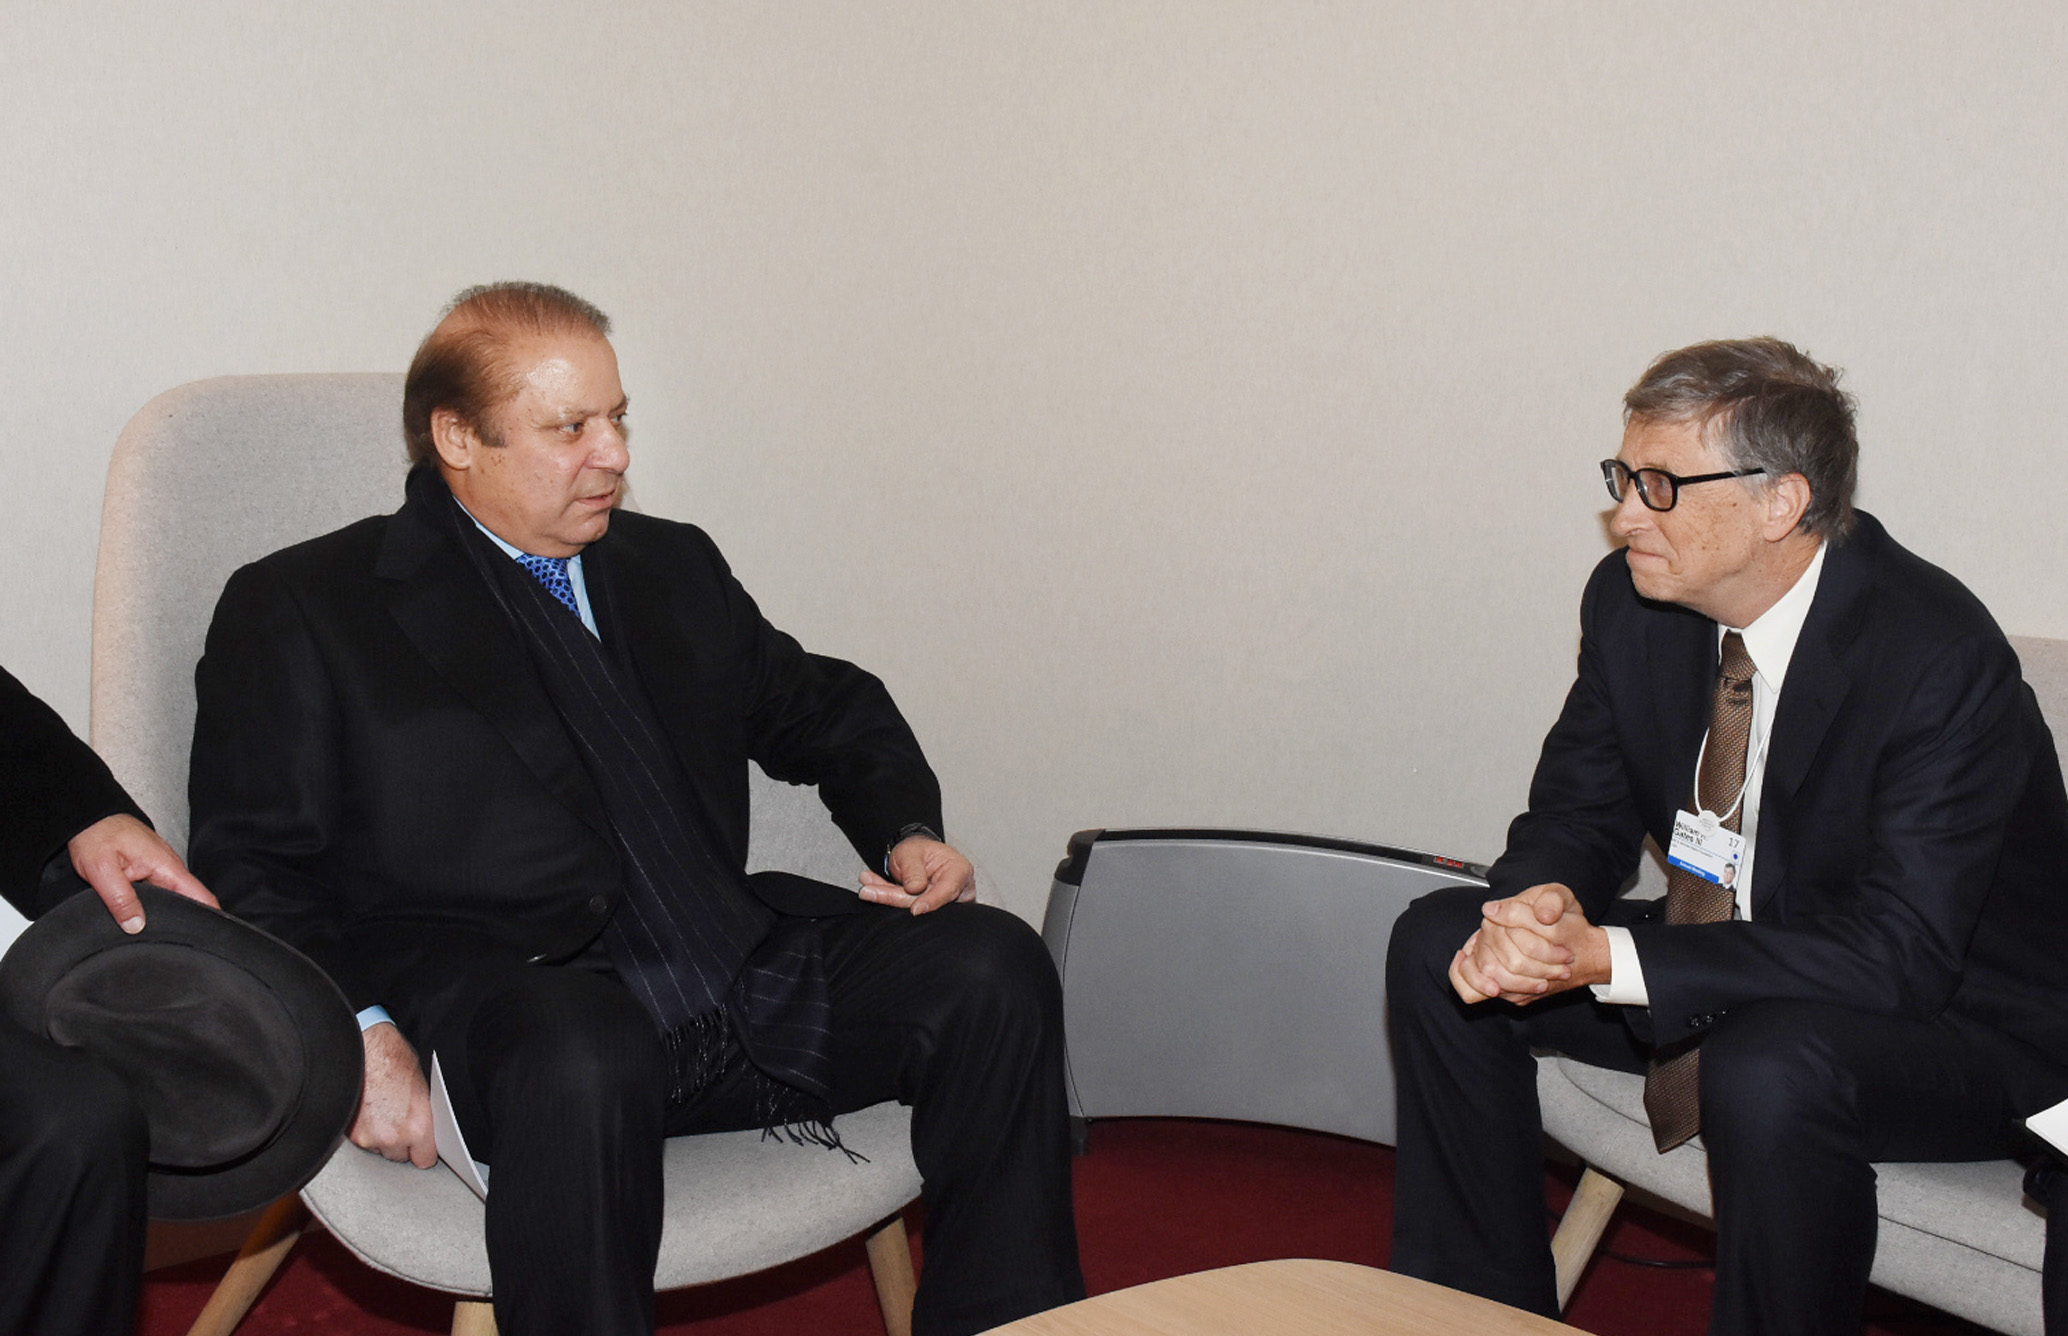 PRIME MINISTER MUHAMMAD NAWAZ SHARIF MEETING WITH BILL GATES ON THE SIDELINES OF WORLD ECONOMIC FORUM AT DAVOS ON 19TH JANUARY, 2017.